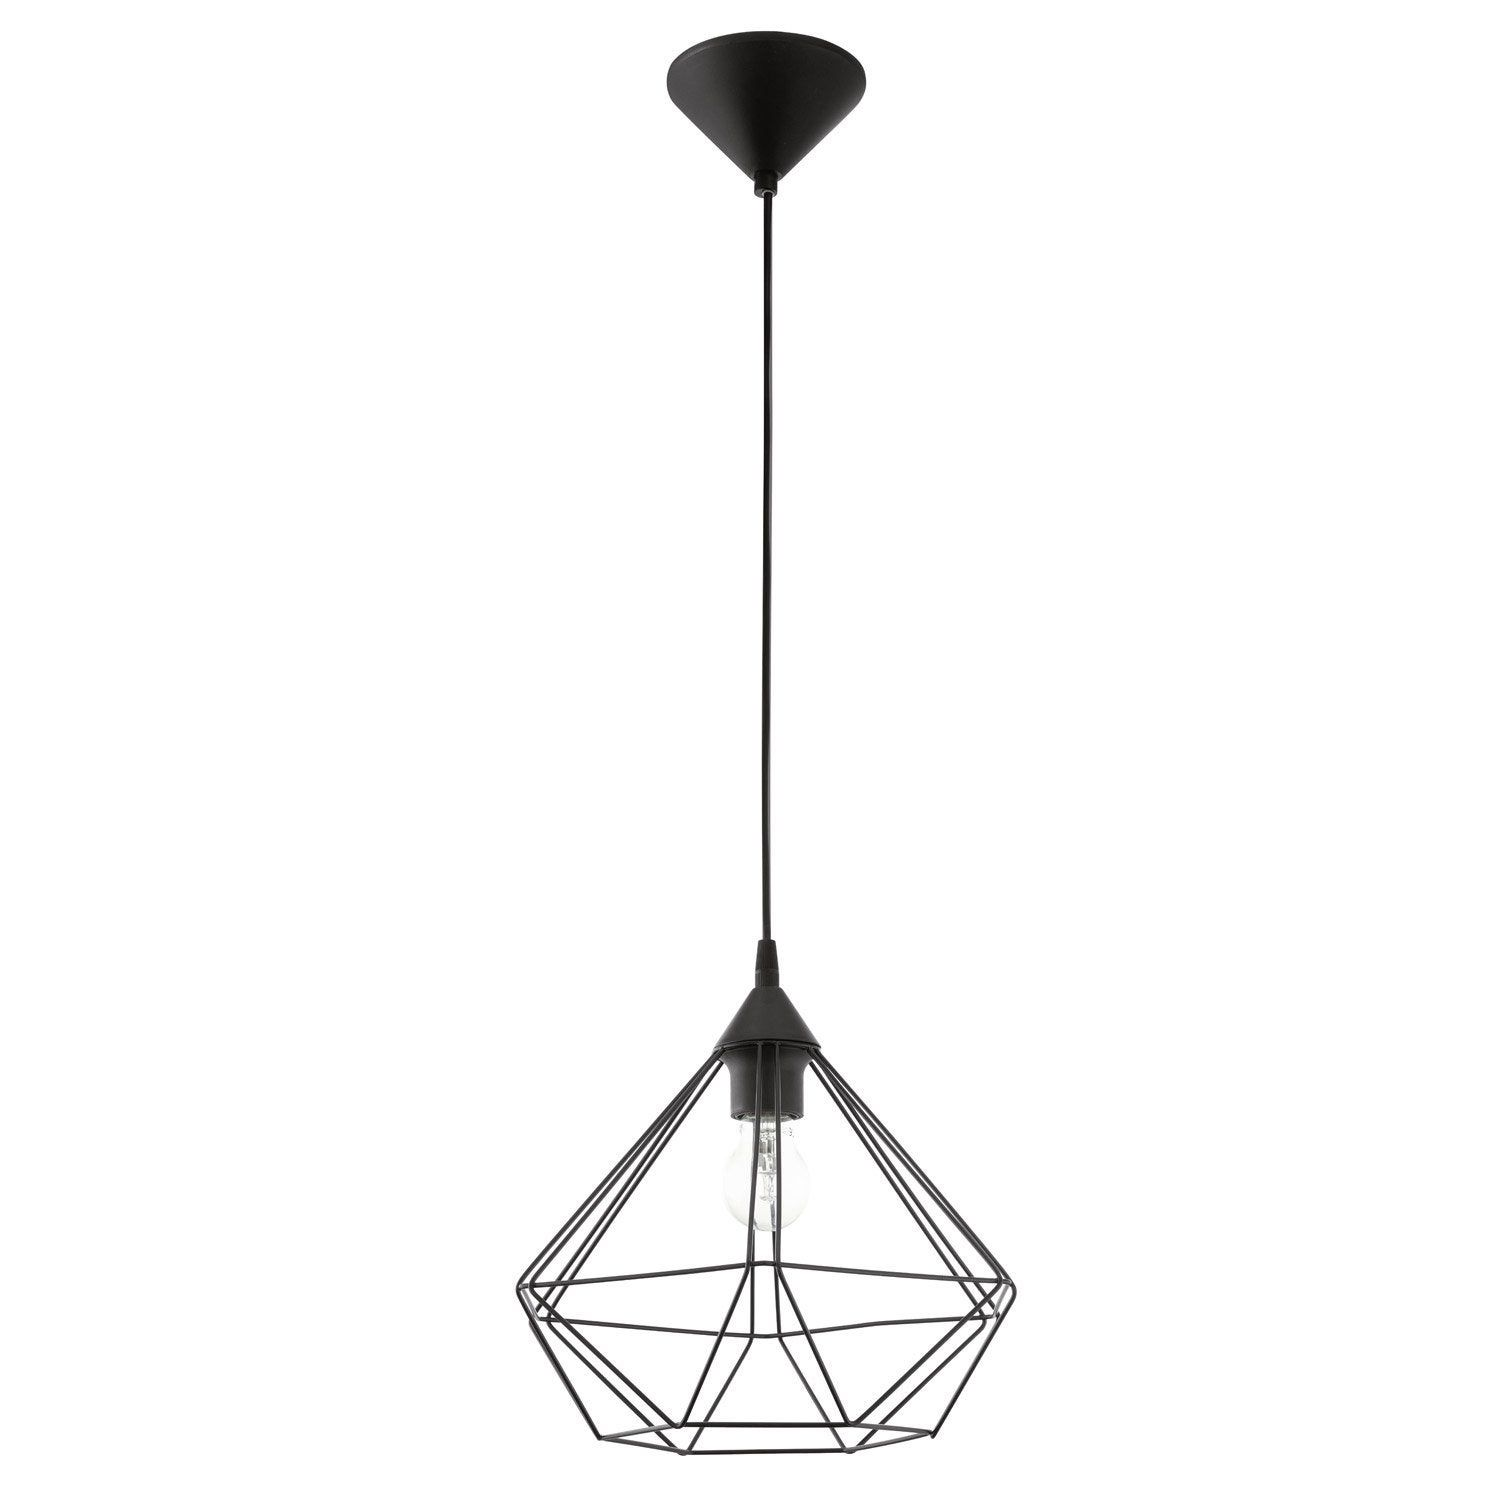 Suspension E27 Style Industriel Tarbes Métal Noir 1 X 60 W Eglo Suspension Luminaire Deco Luminaire Lampe à Suspension